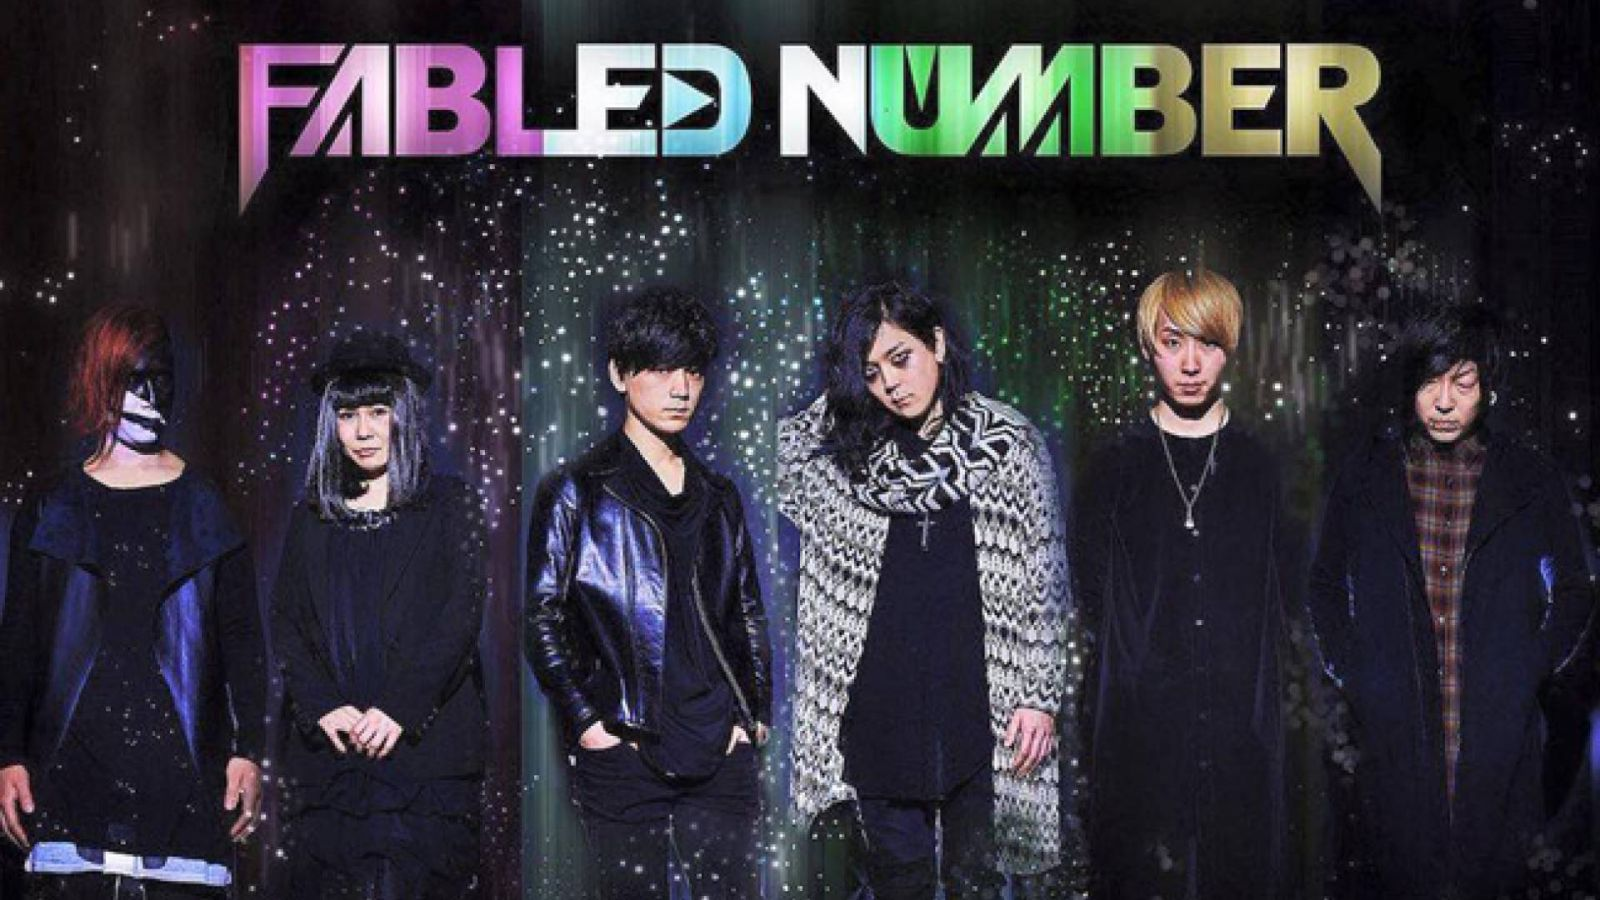 FABLED NUMBER's New Mini-Album © FABLED NUMBER. All rights reserved.